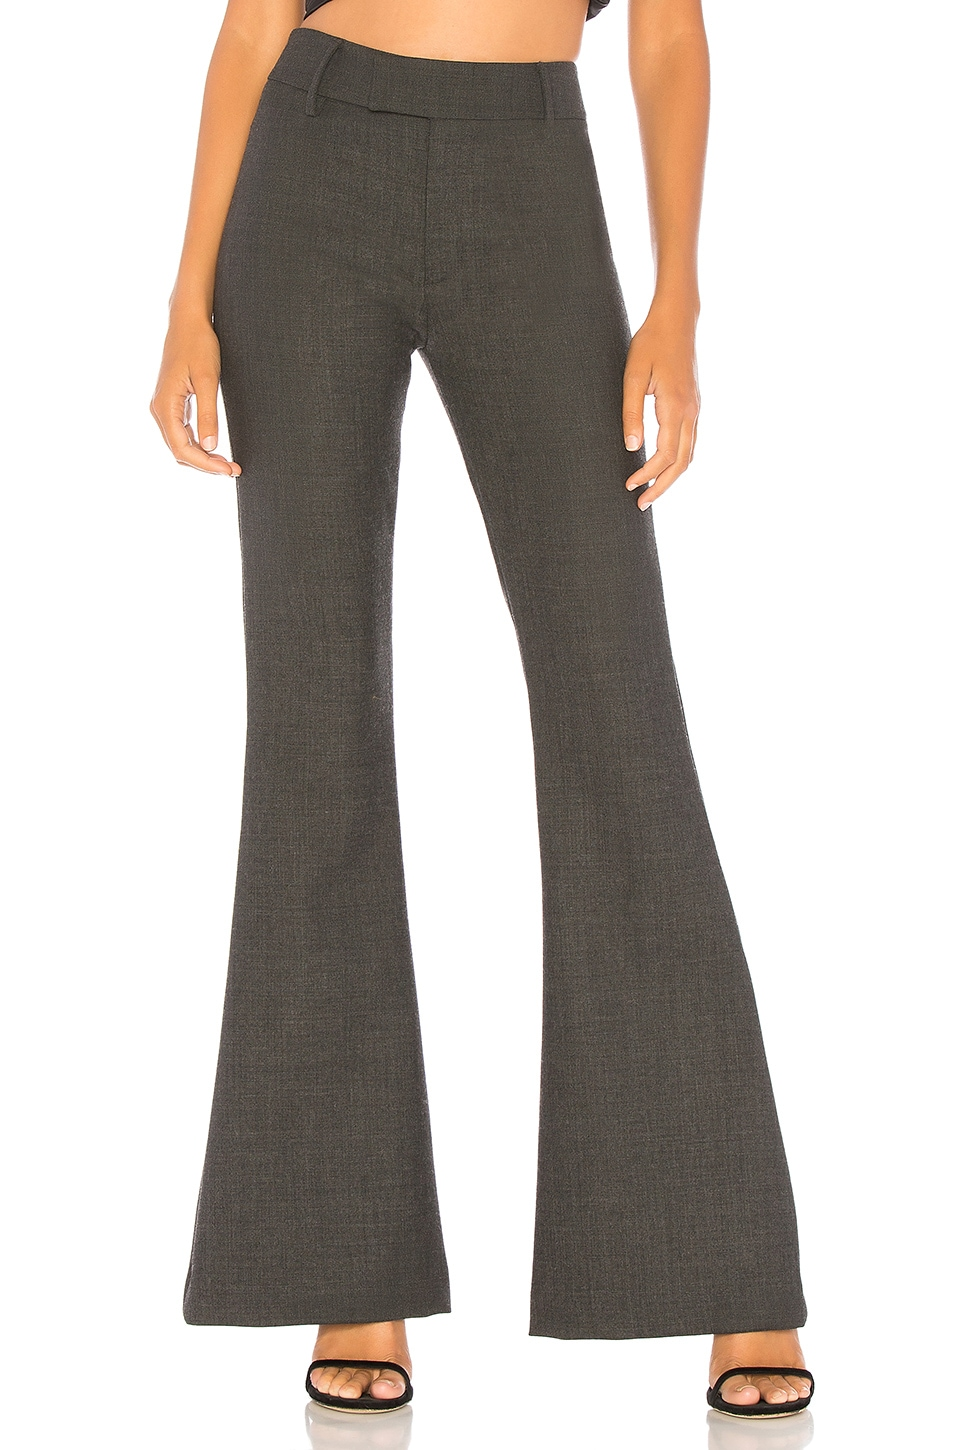 Smythe Bootcut Pant in Charcoal